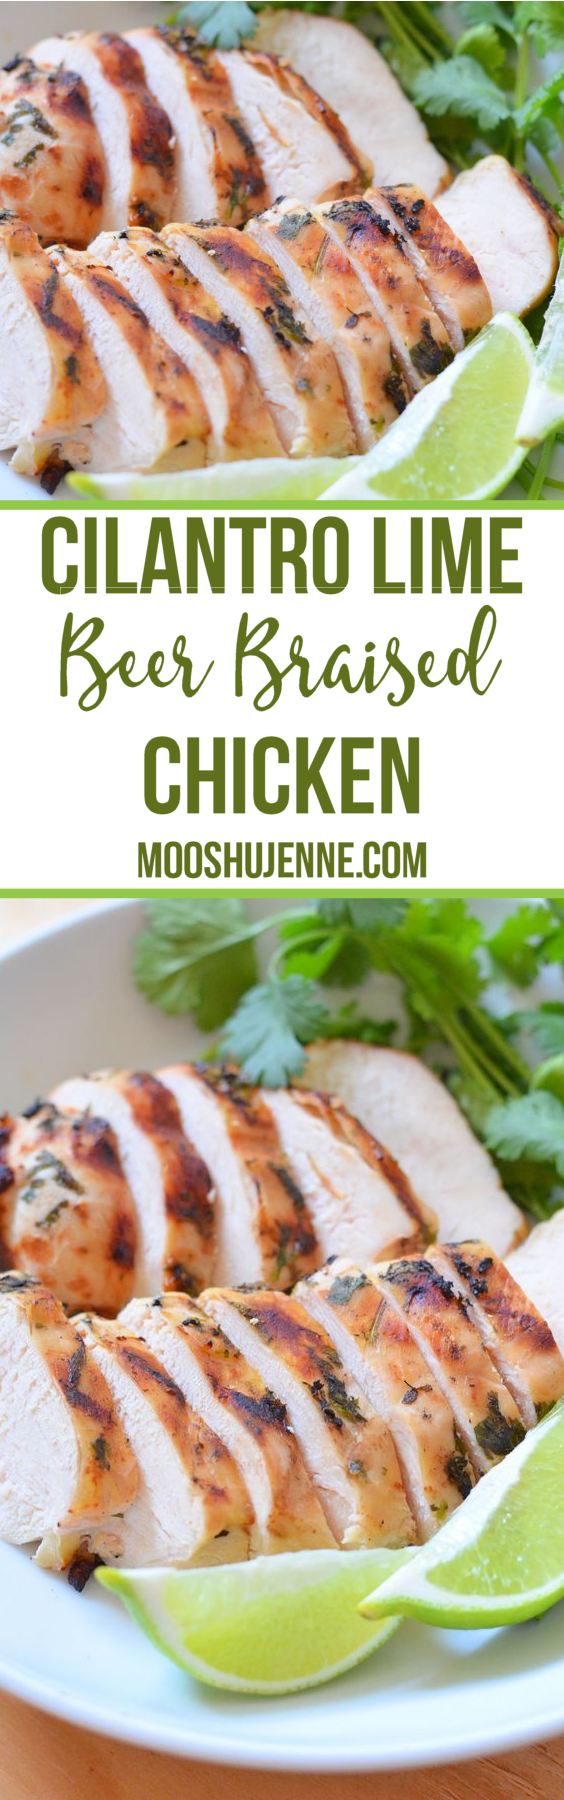 I know this Cilantro Lime Beer Braised Chicken would be a great one in the slower cooker. It's fabulous on the grill!